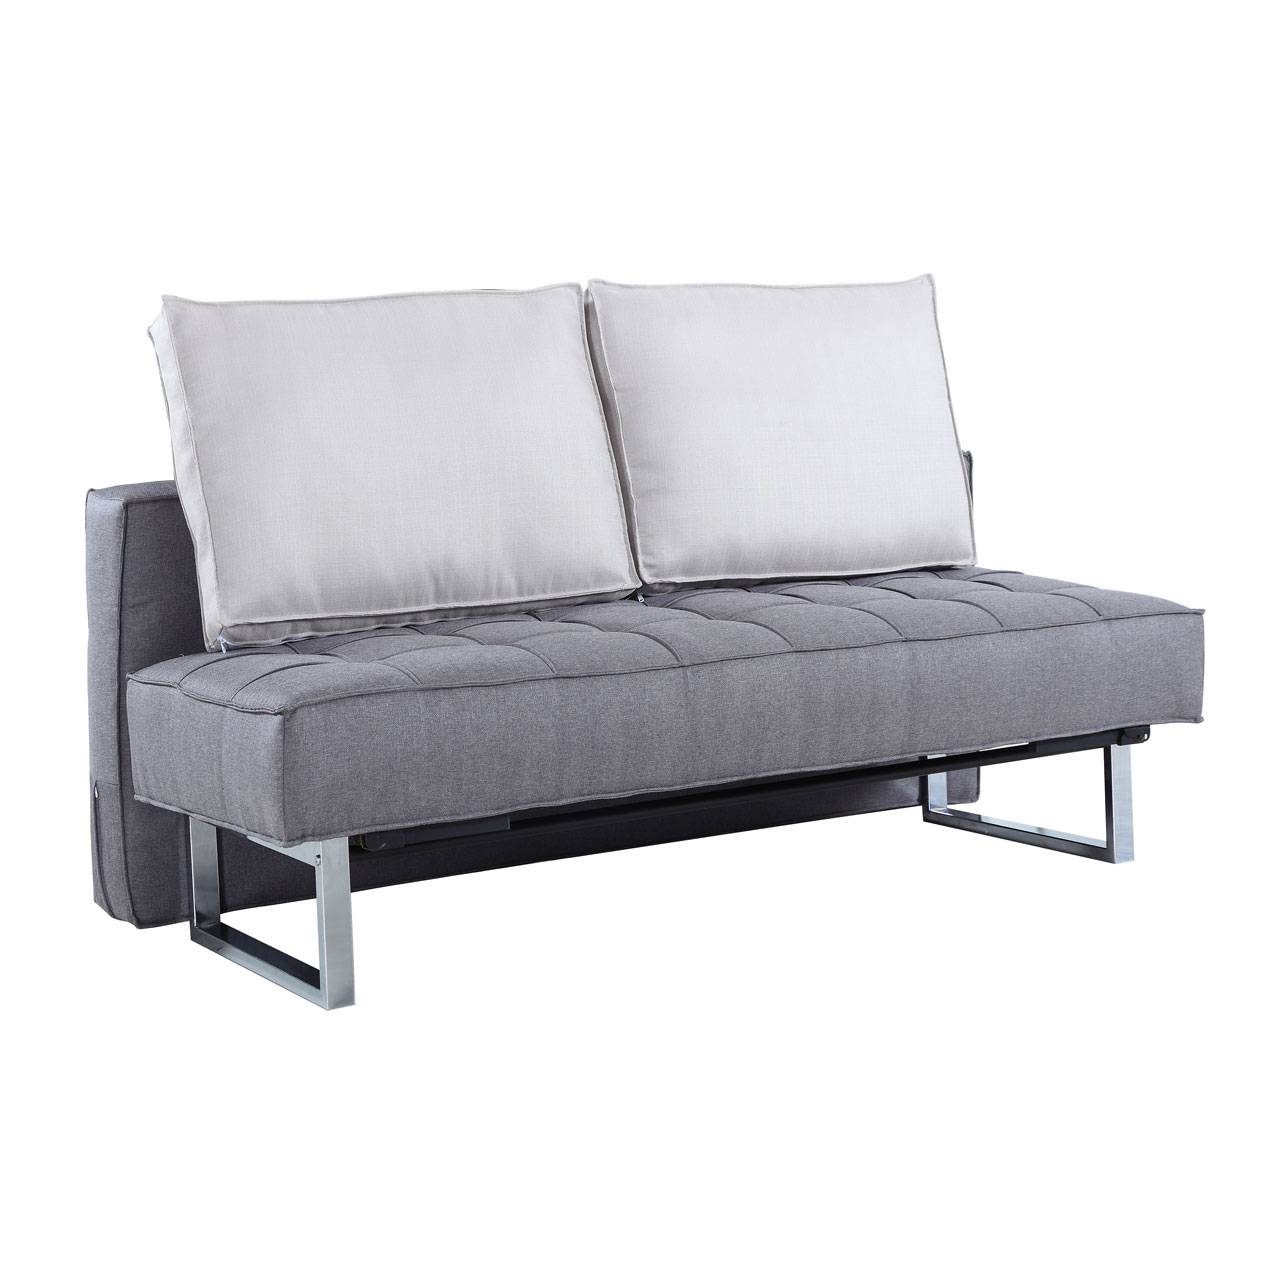 Reclining sofa bed philippines sofa menzilperde net for Sofa bed philippines